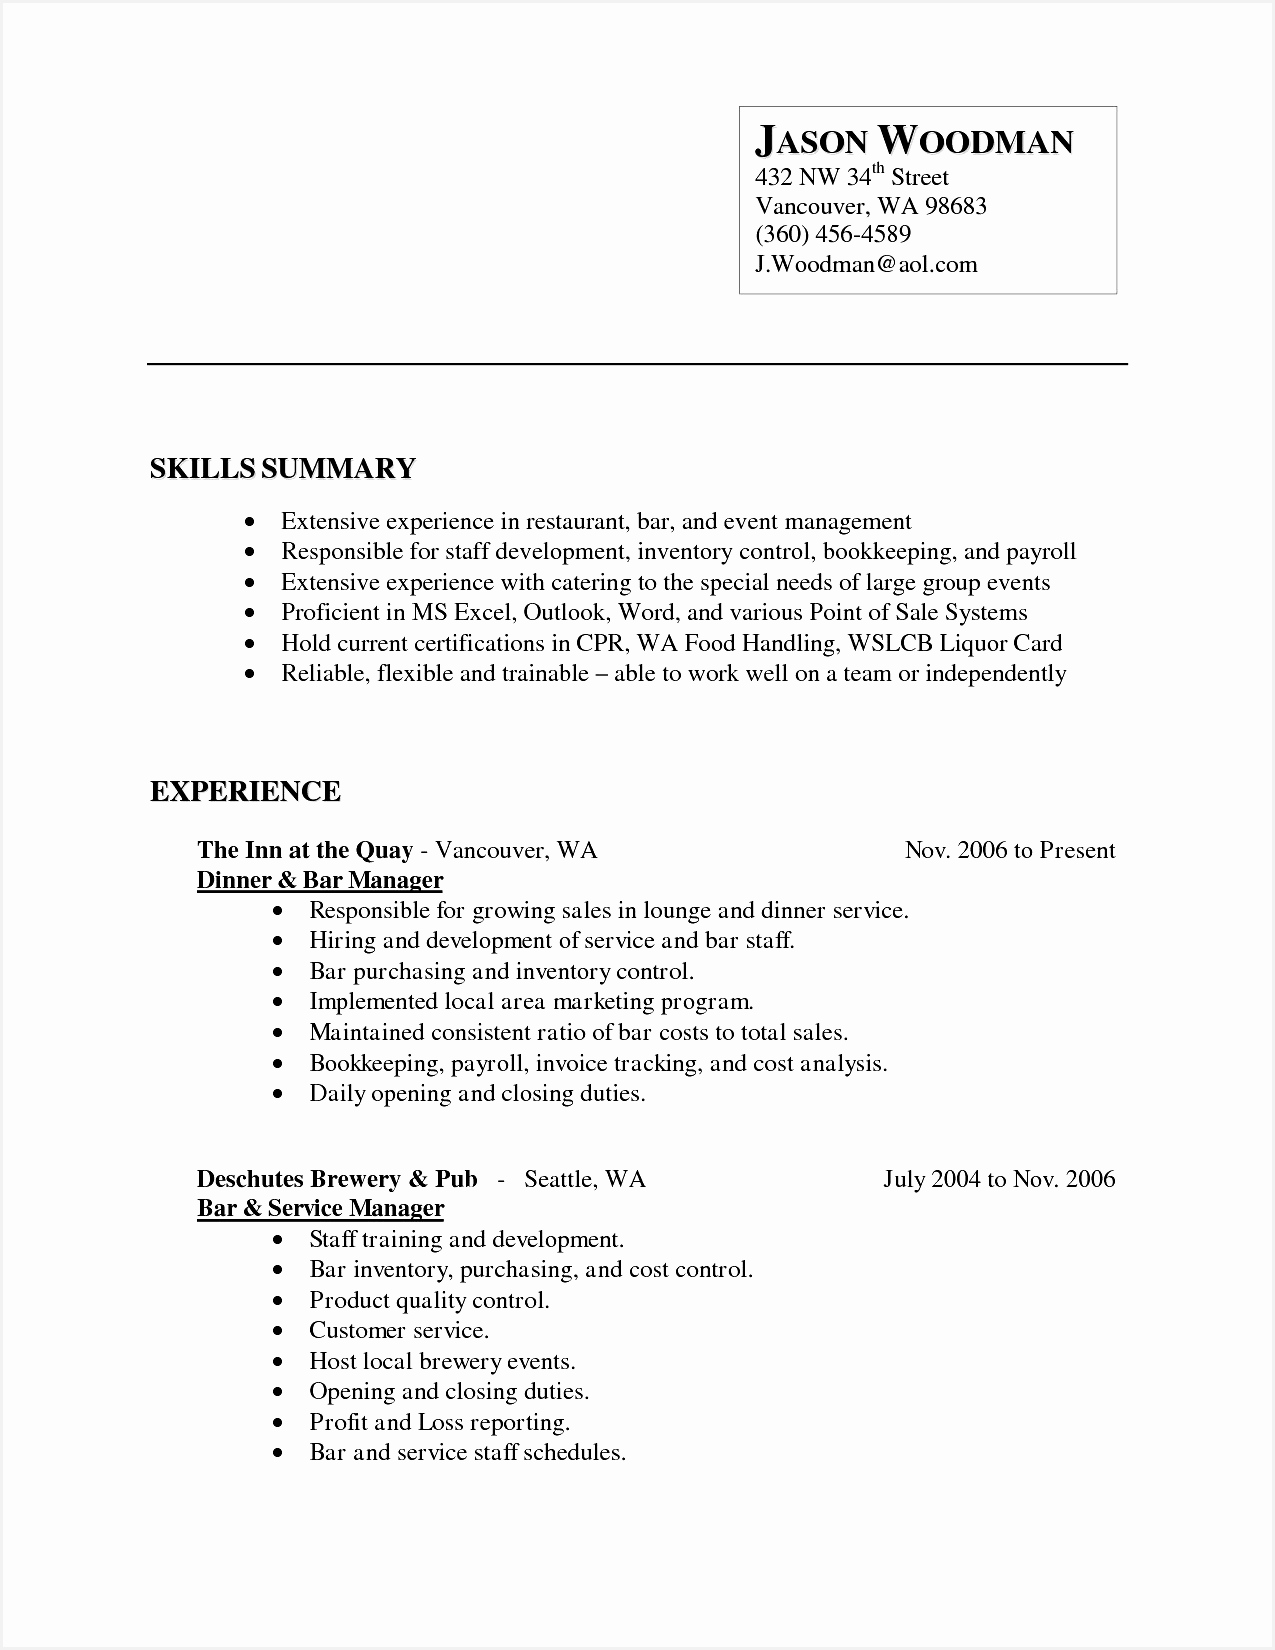 Beautiful Letter Examples Volunteer Positionvolunteer Work Resume Work Skills for Resume Awesome Artist Resume Template16501275